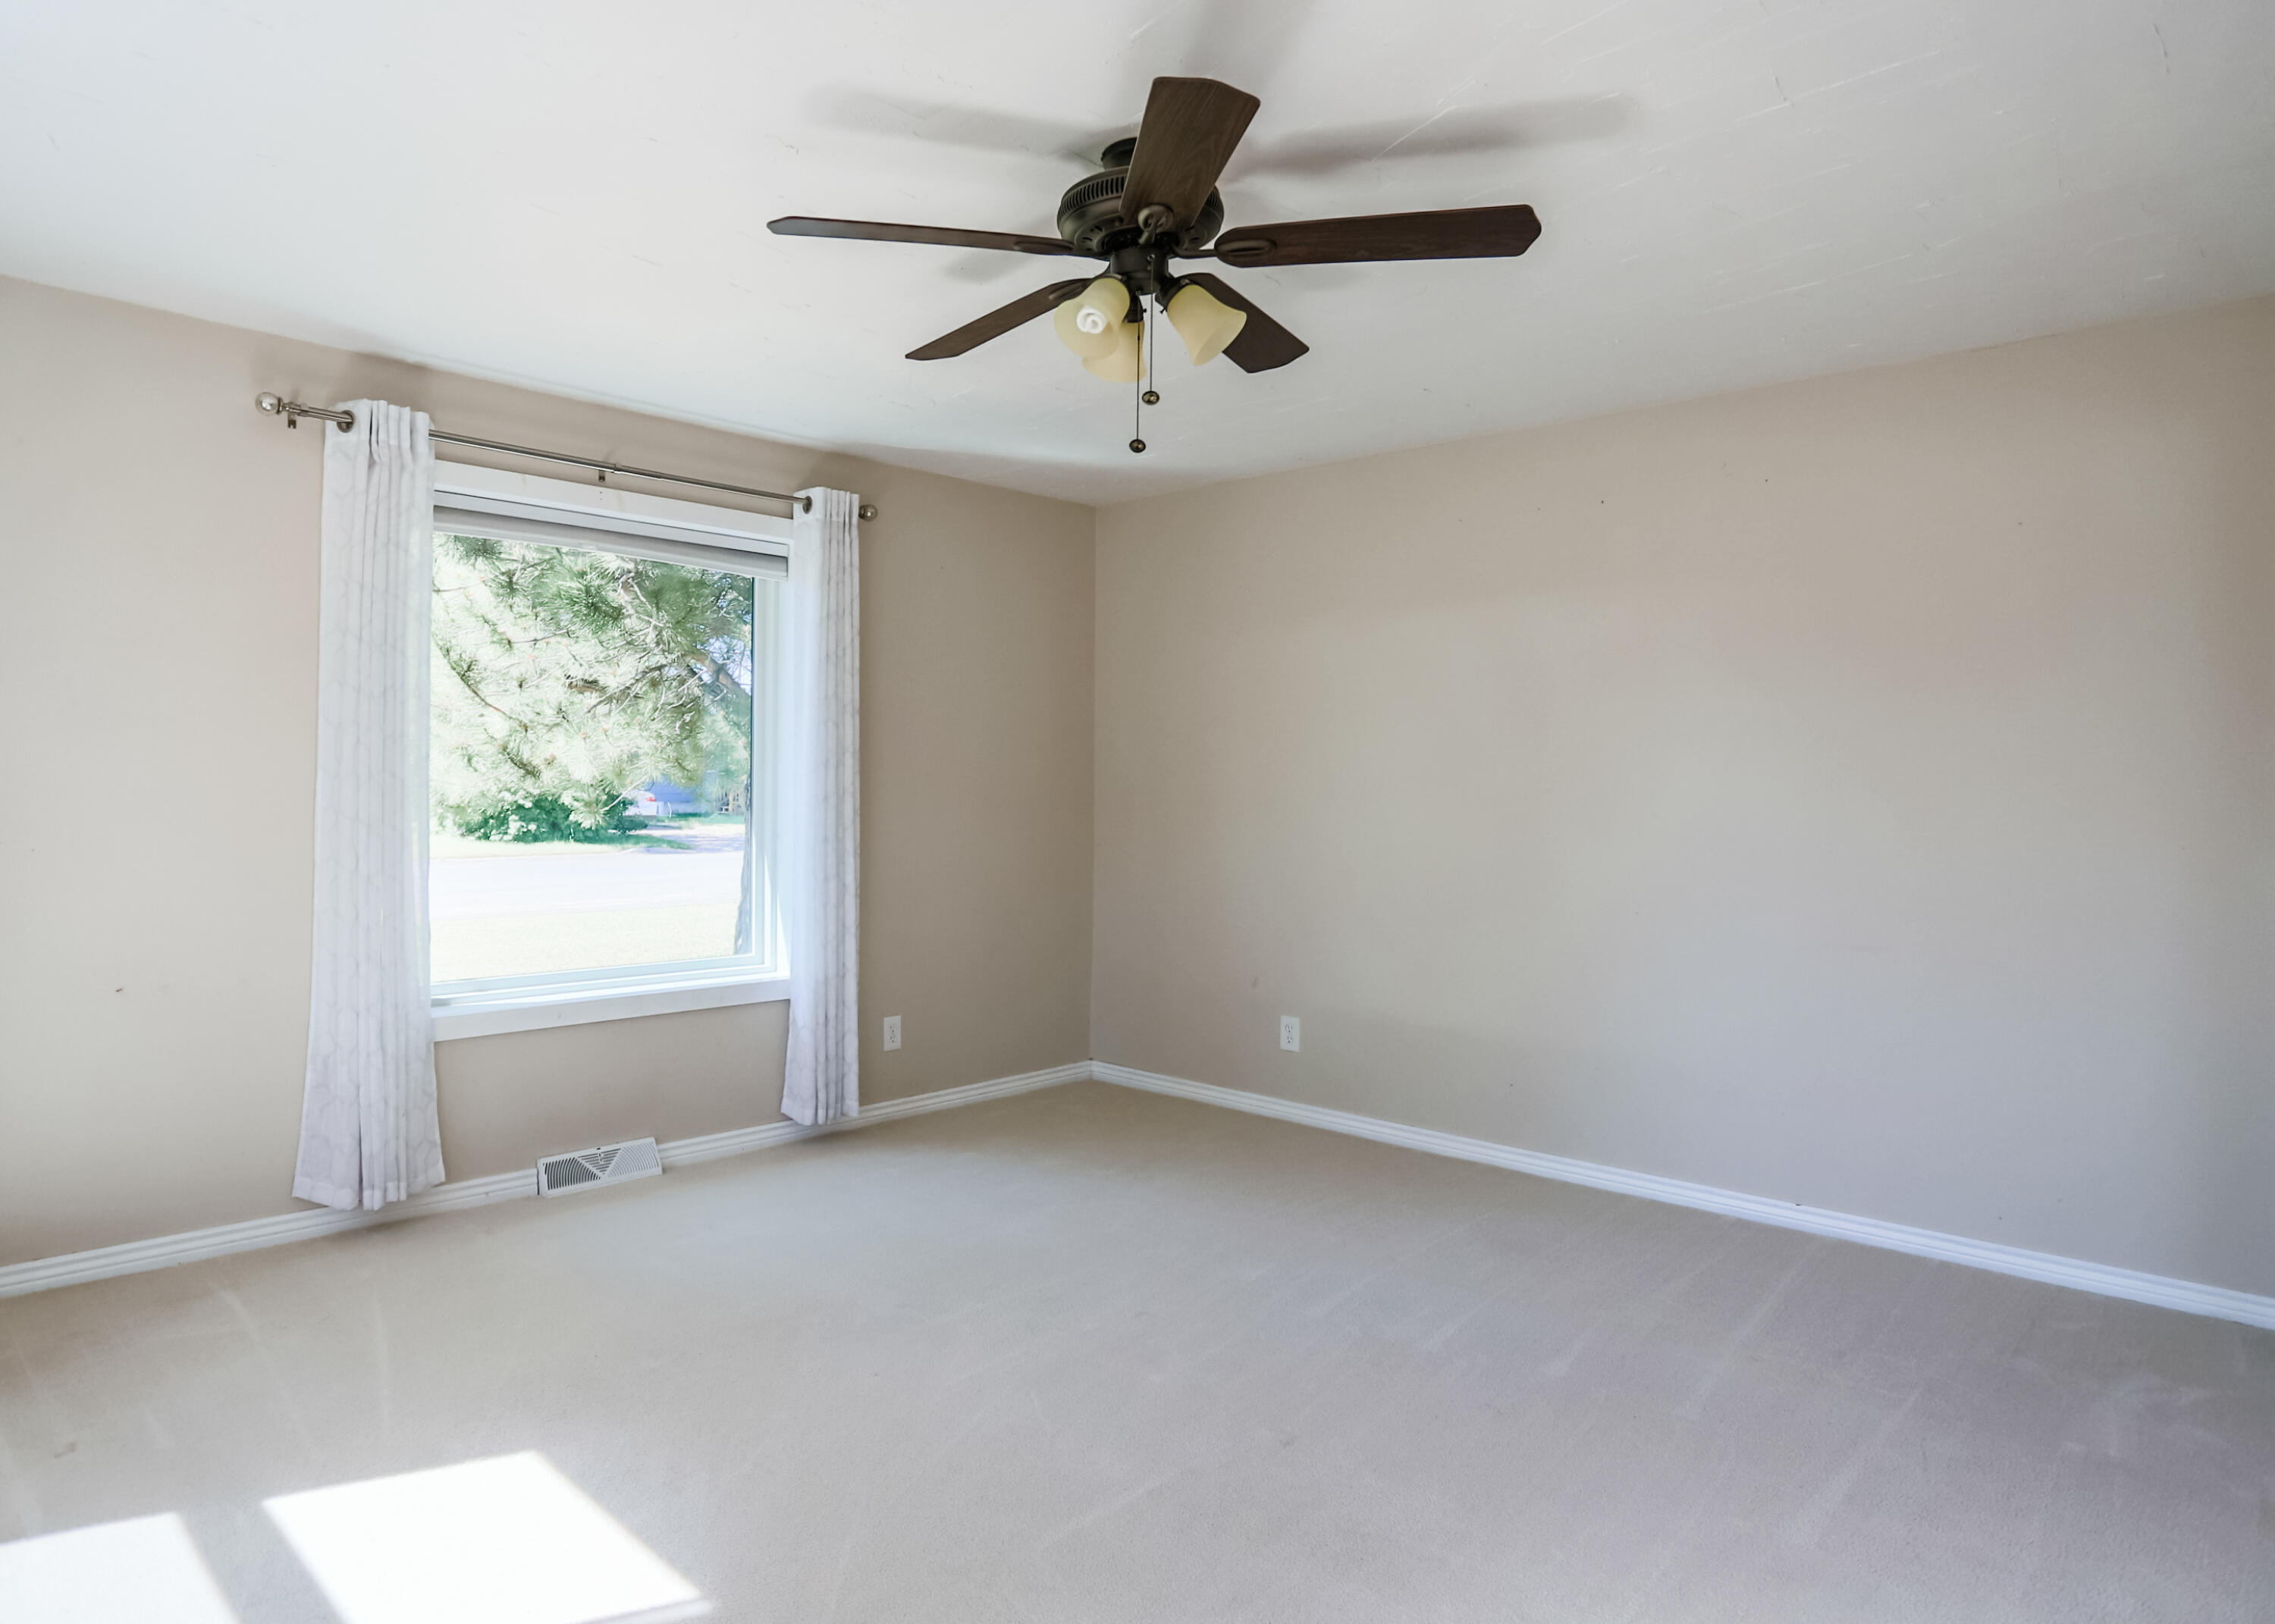 Take a look at this adorable UPDATED home on a LARGE CORNER LOT in the heart of Fairfield!  Ideally located near the school, pool, and park, this could be your chance to enjoy all the benefits of small town living!  This 2 bed, 2 bath charmer offers a total of 1478sf.  246sf of that is an unfinished loft space that could possibly be a 3rd bedroom, kids play space, office, or game room.  The home is situated on 3 city lots totalling 10,500sf.  Call Jen Barnett at 406.781.3947 or your real estate professional.